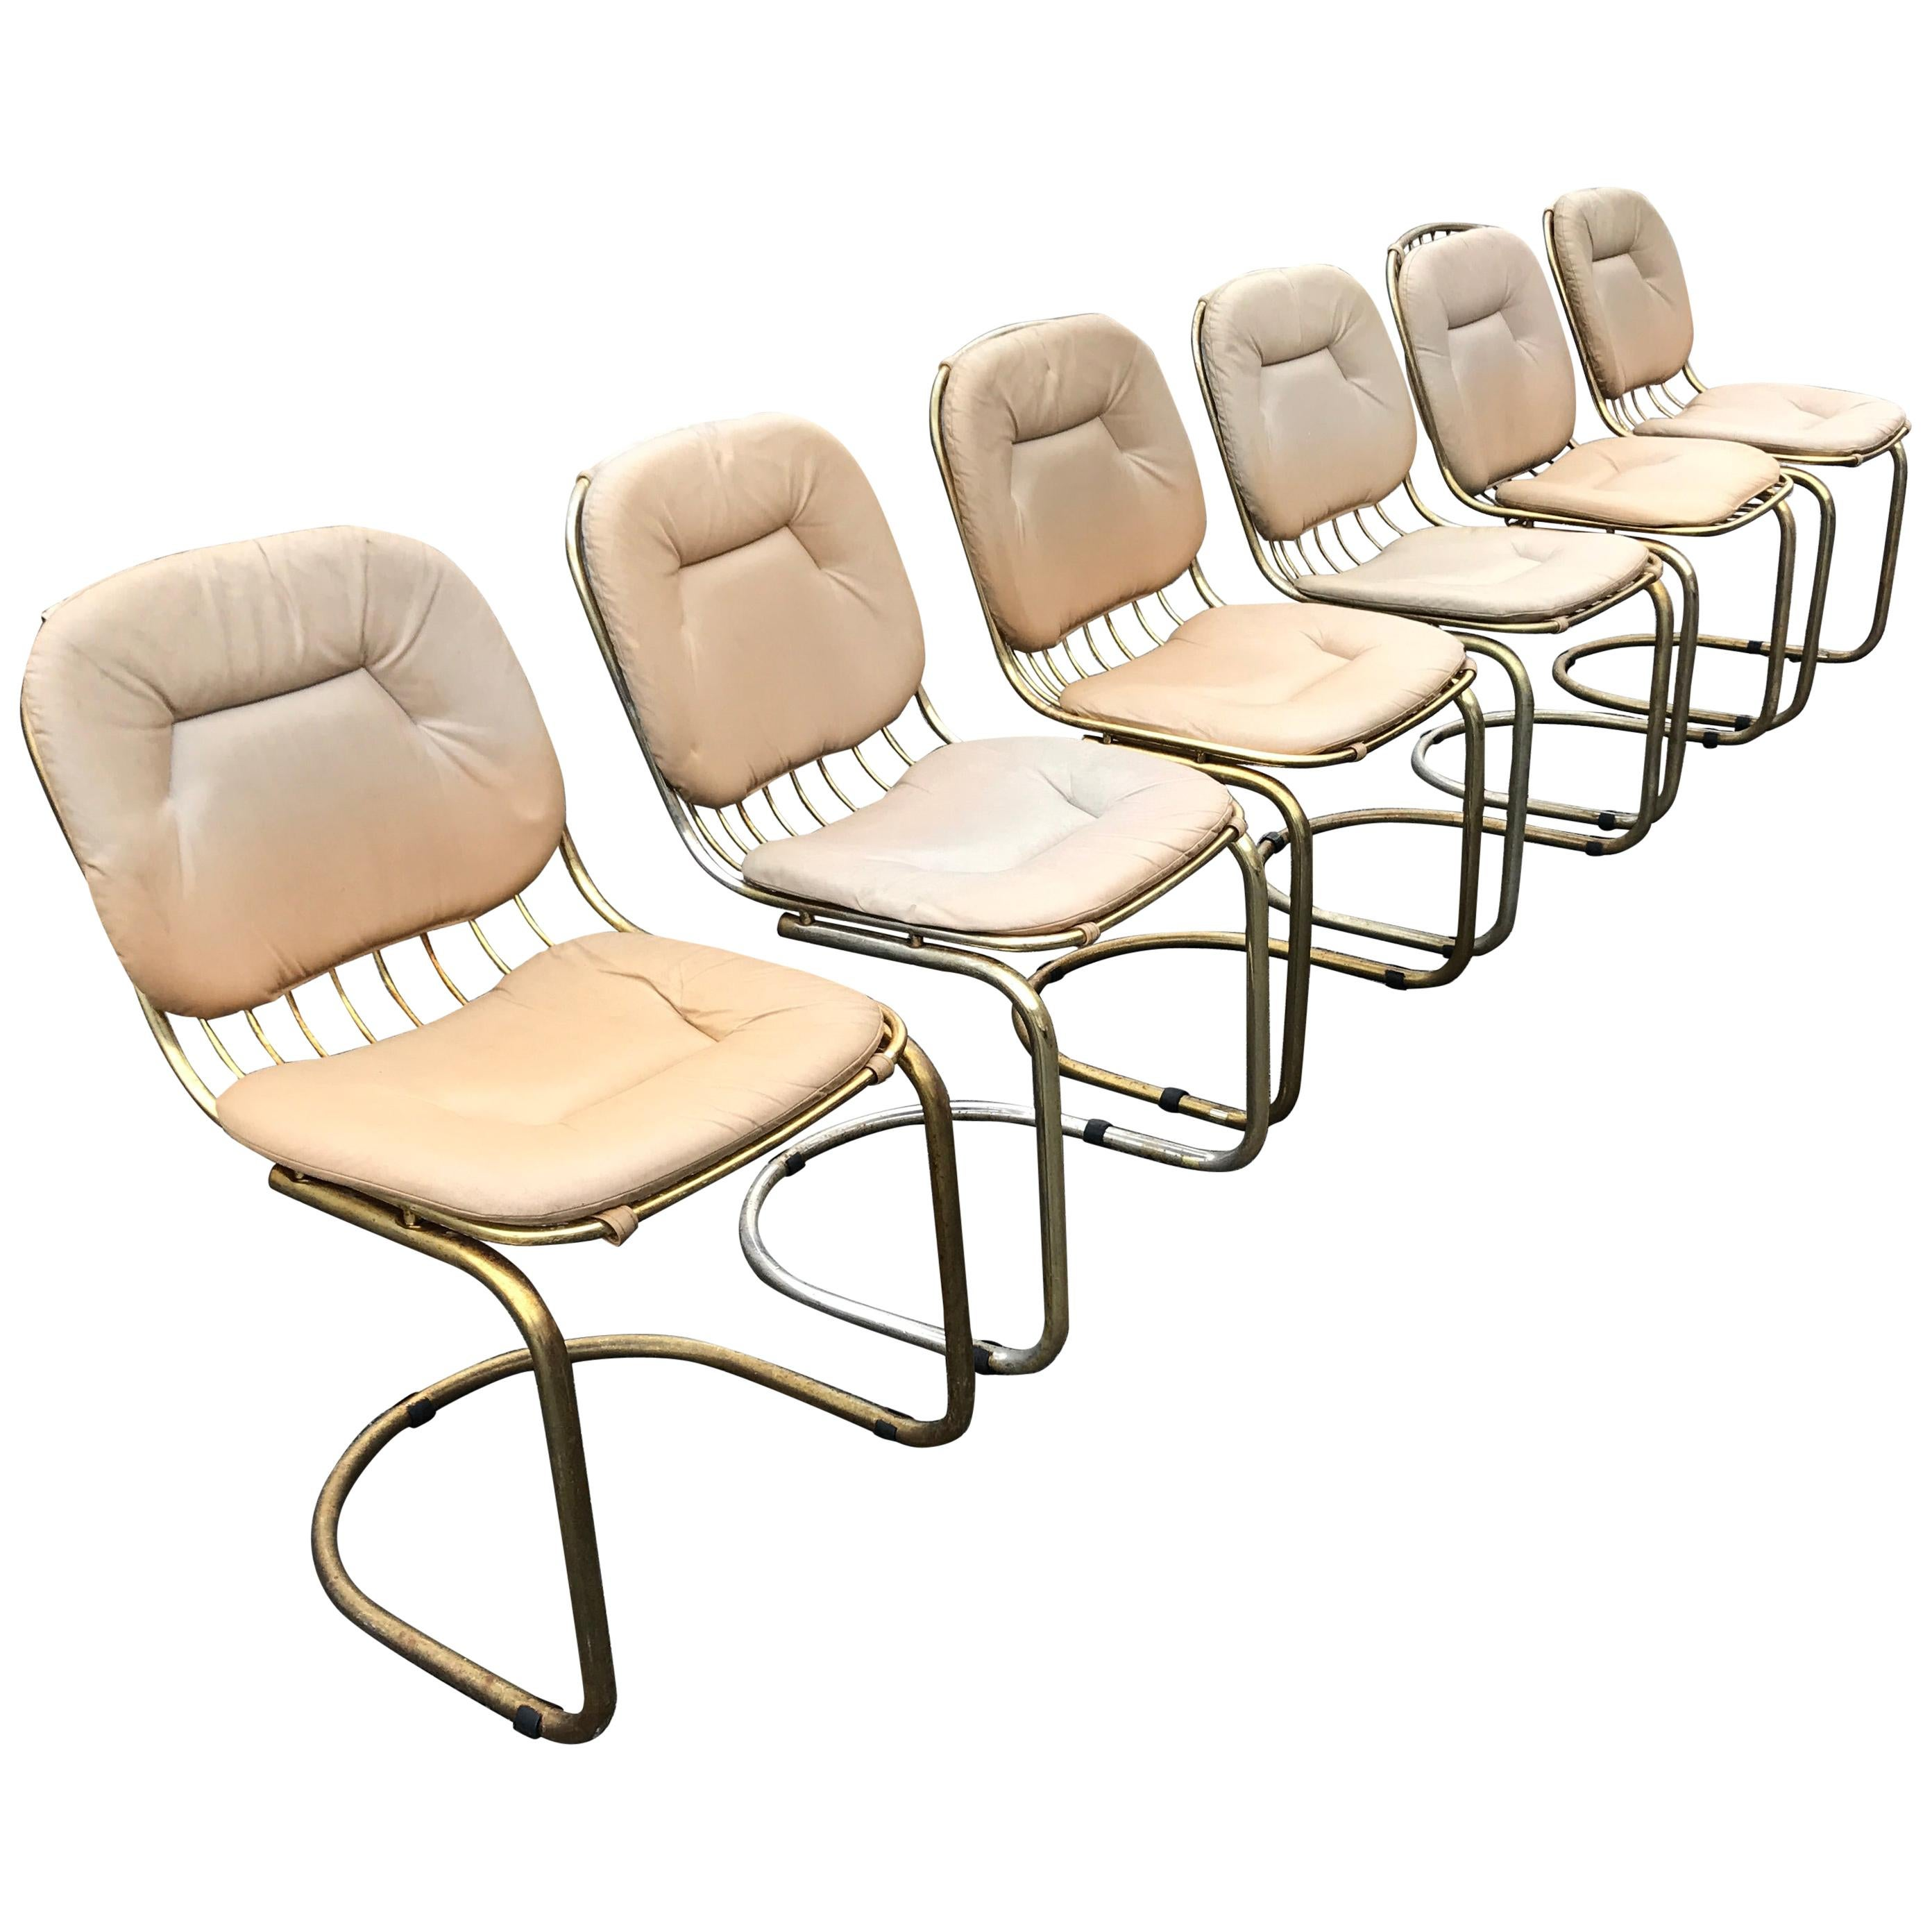 1970s Italian Vintage Cantilever Chairs